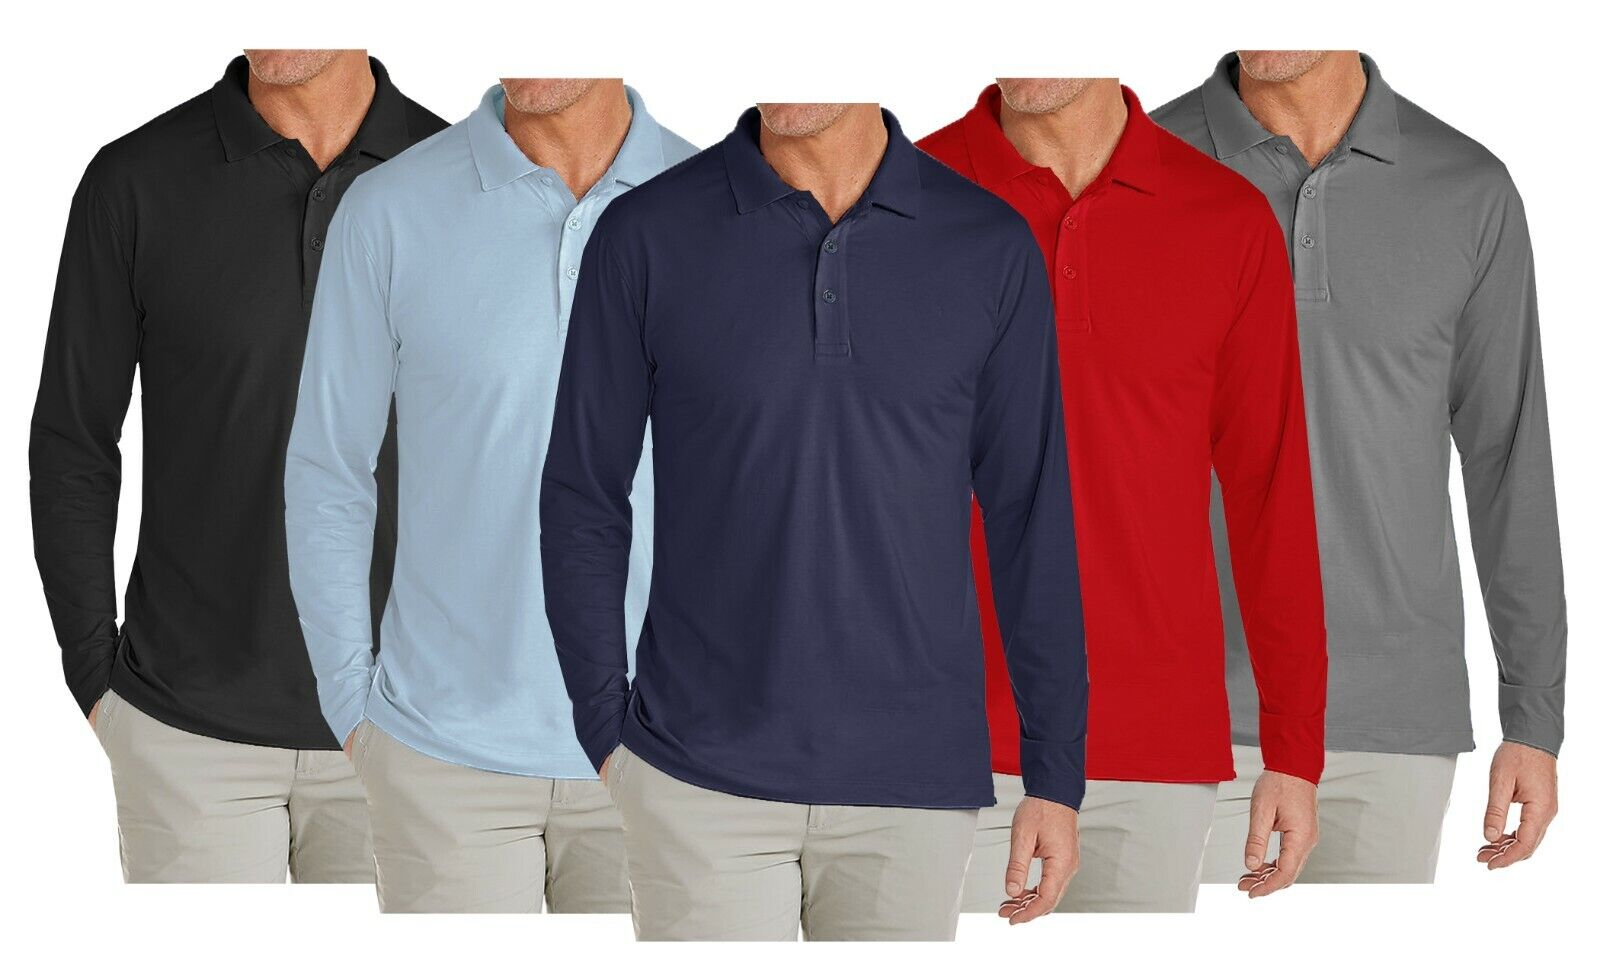 mens-long-sleeve-long-tail-polo-shirt-modern-fit-casual-cotton-blend-button-nwt